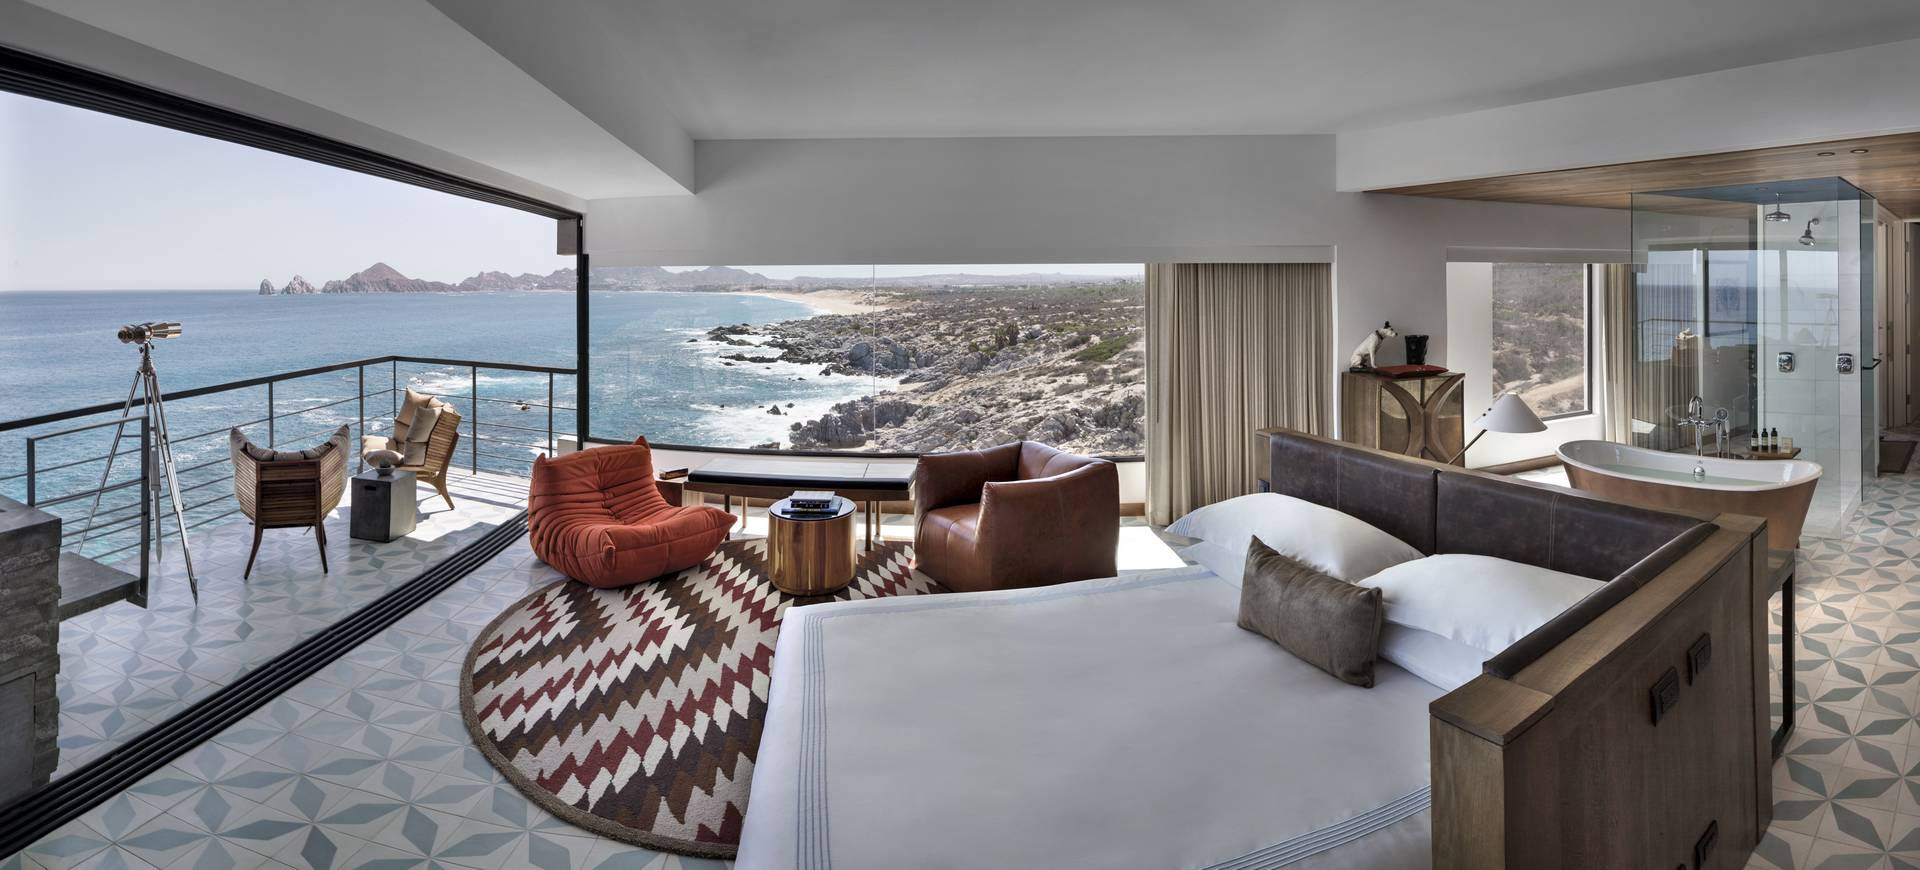 The Cape Hotel Cabo San Lucas Review Gtspirit